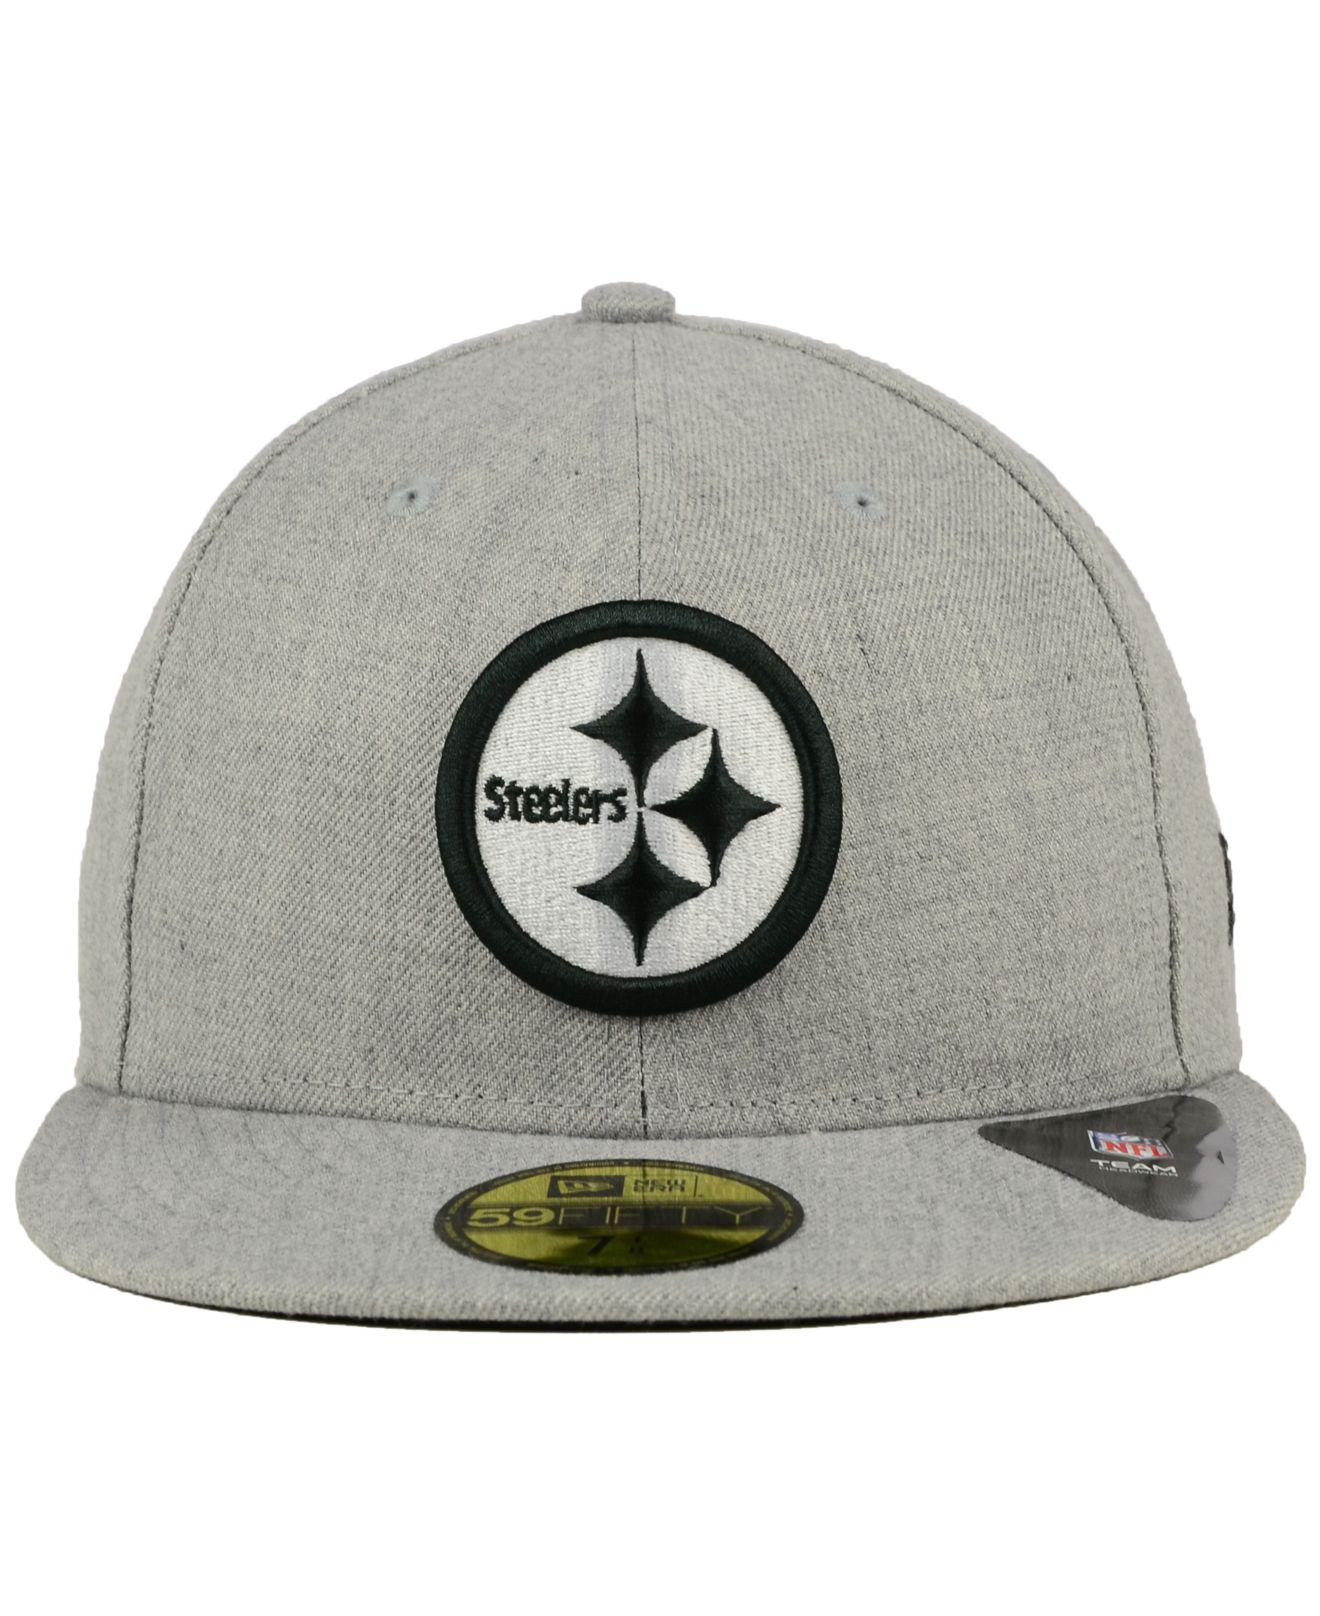 72184ab0b7d Lyst - Ktz Pittsburgh Steelers Heather Black White 59fifty Cap in Gray for  Men